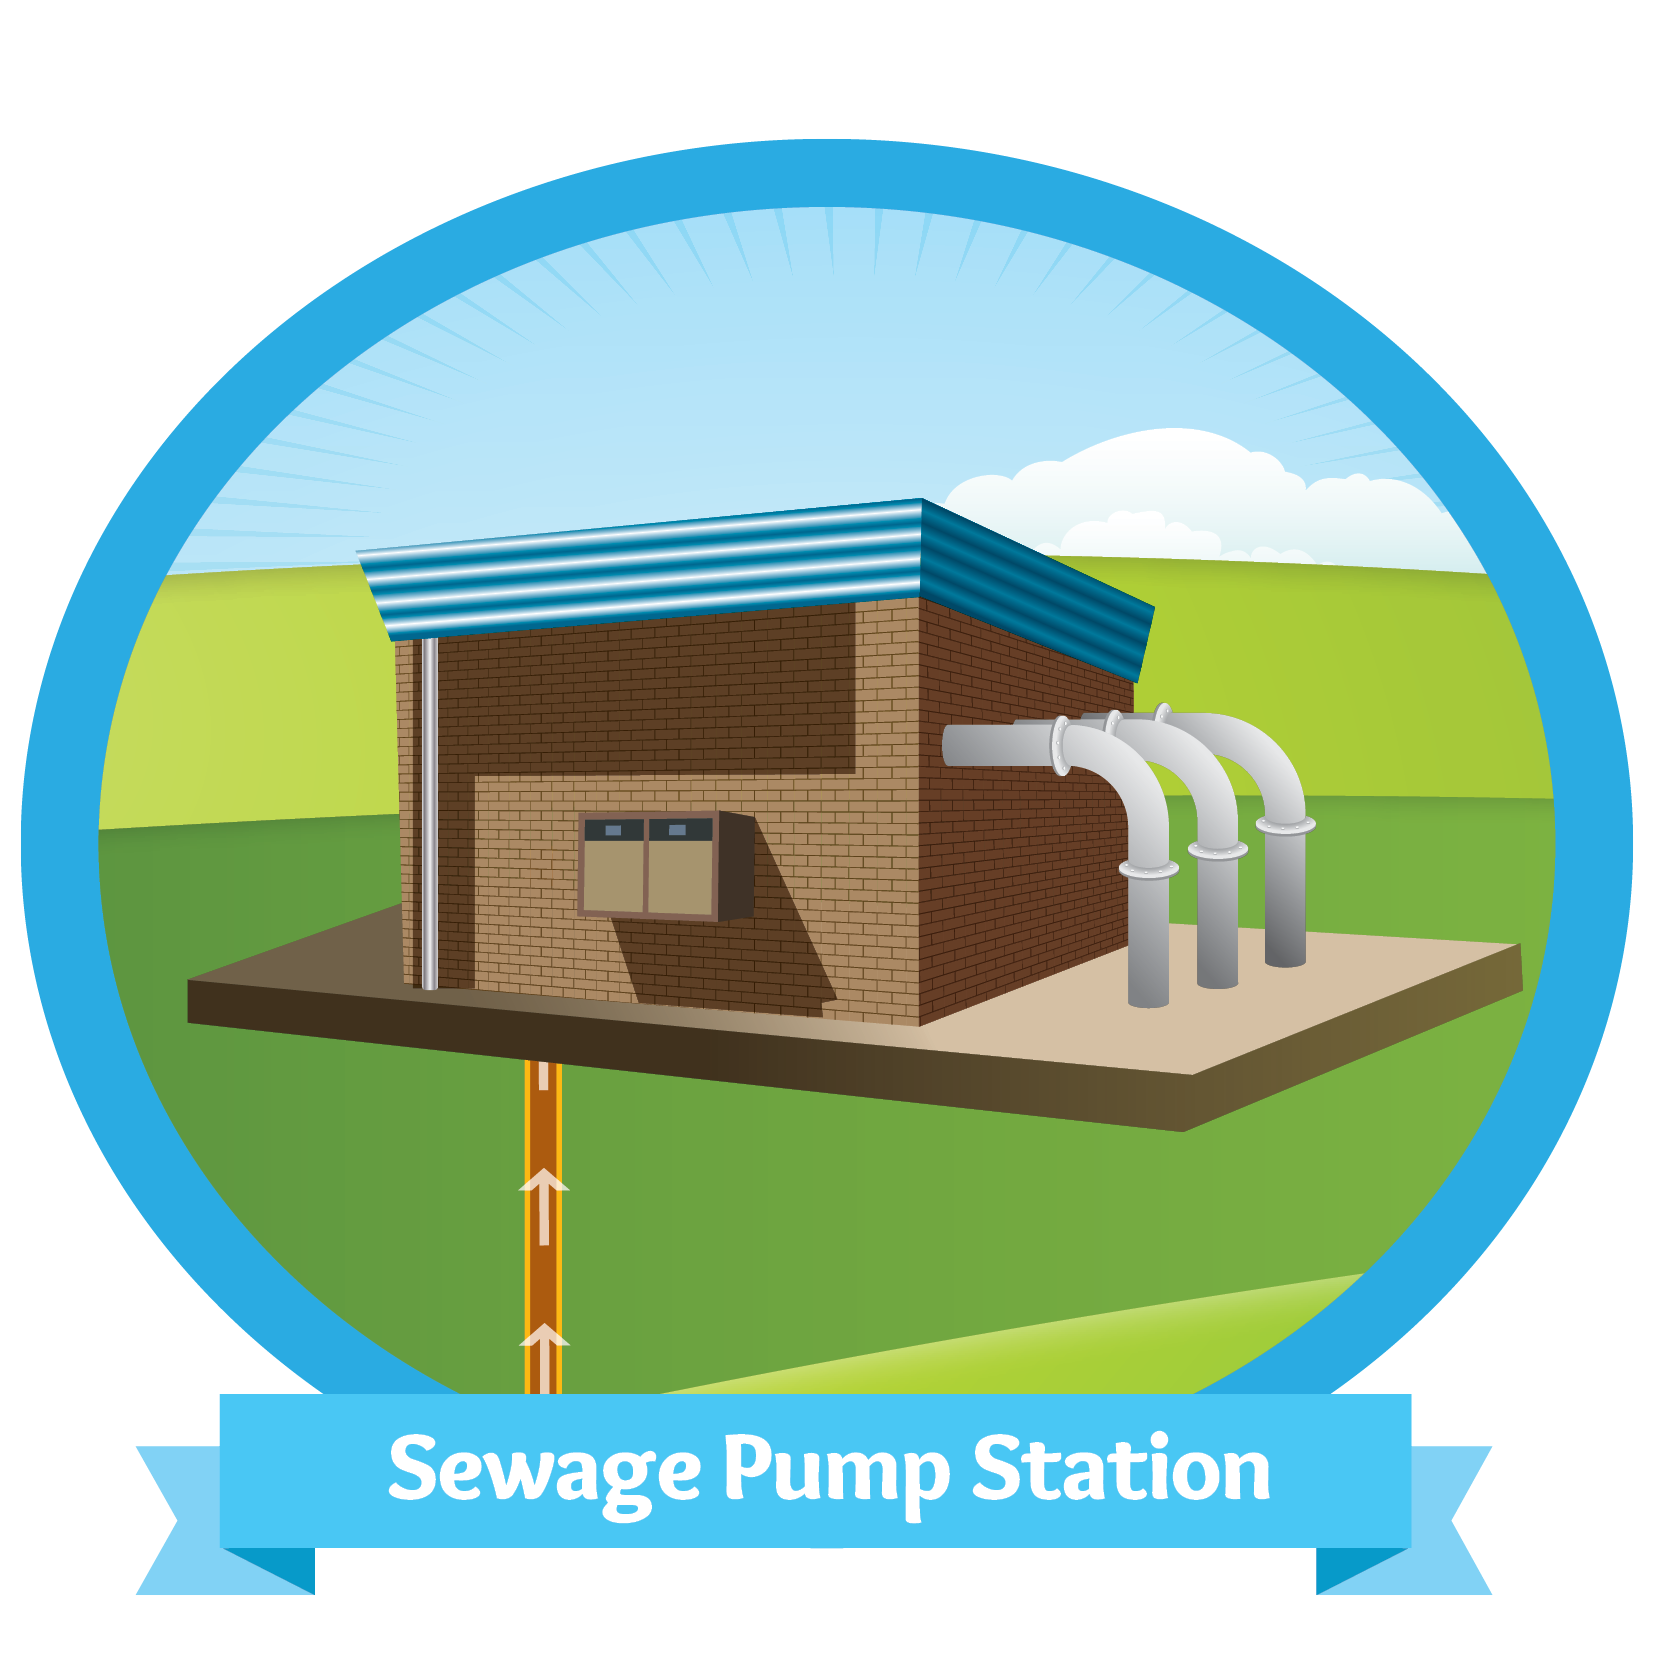 Sewage pump station